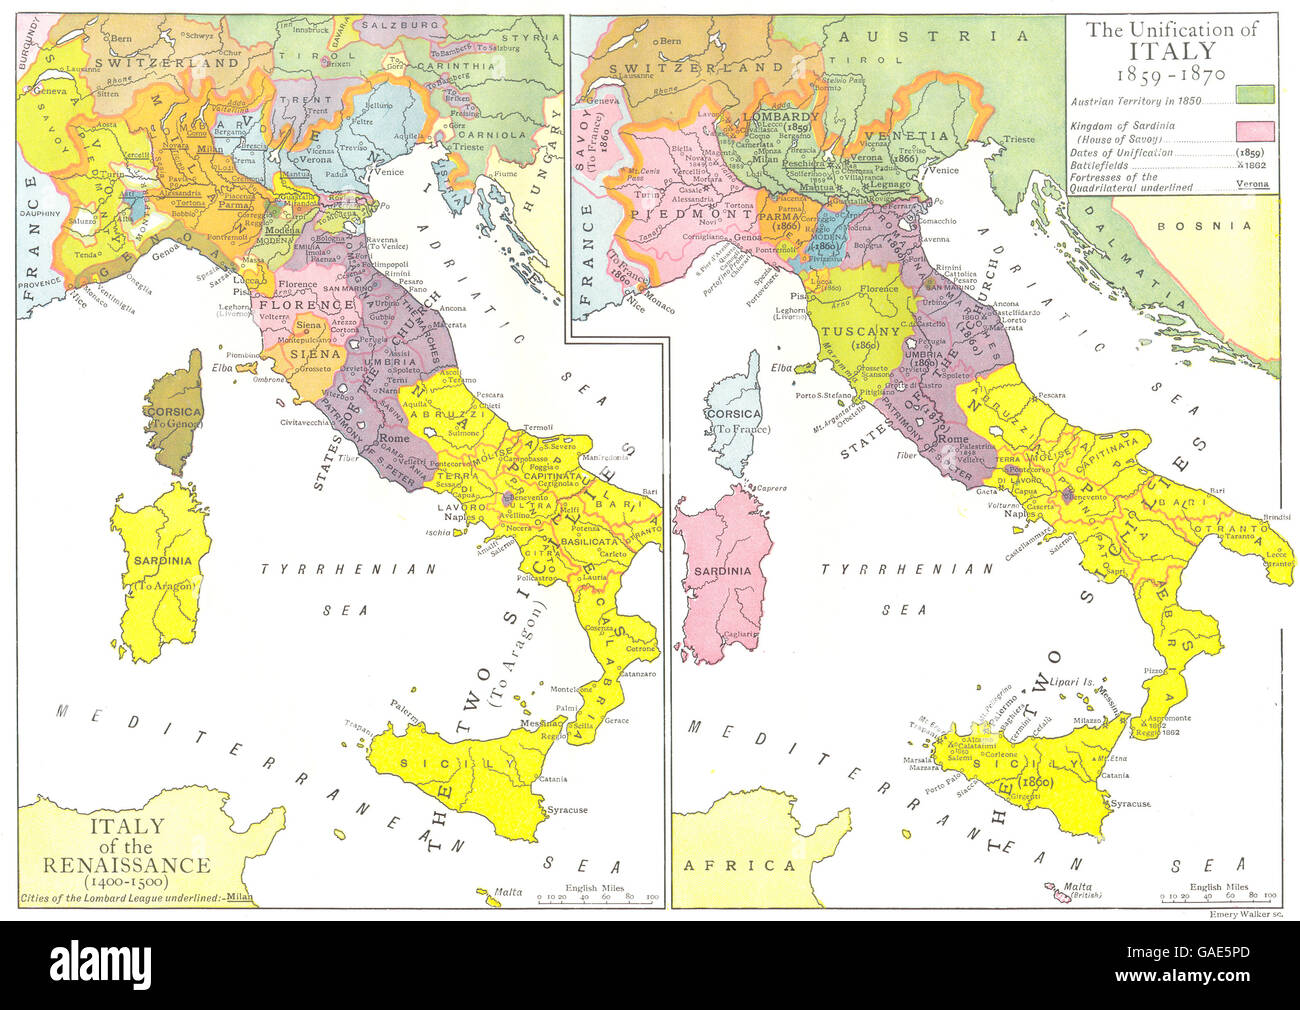 Italy Map 1500.Italy Of Renaissance 1400 1500 Unification 1859 1870 1910